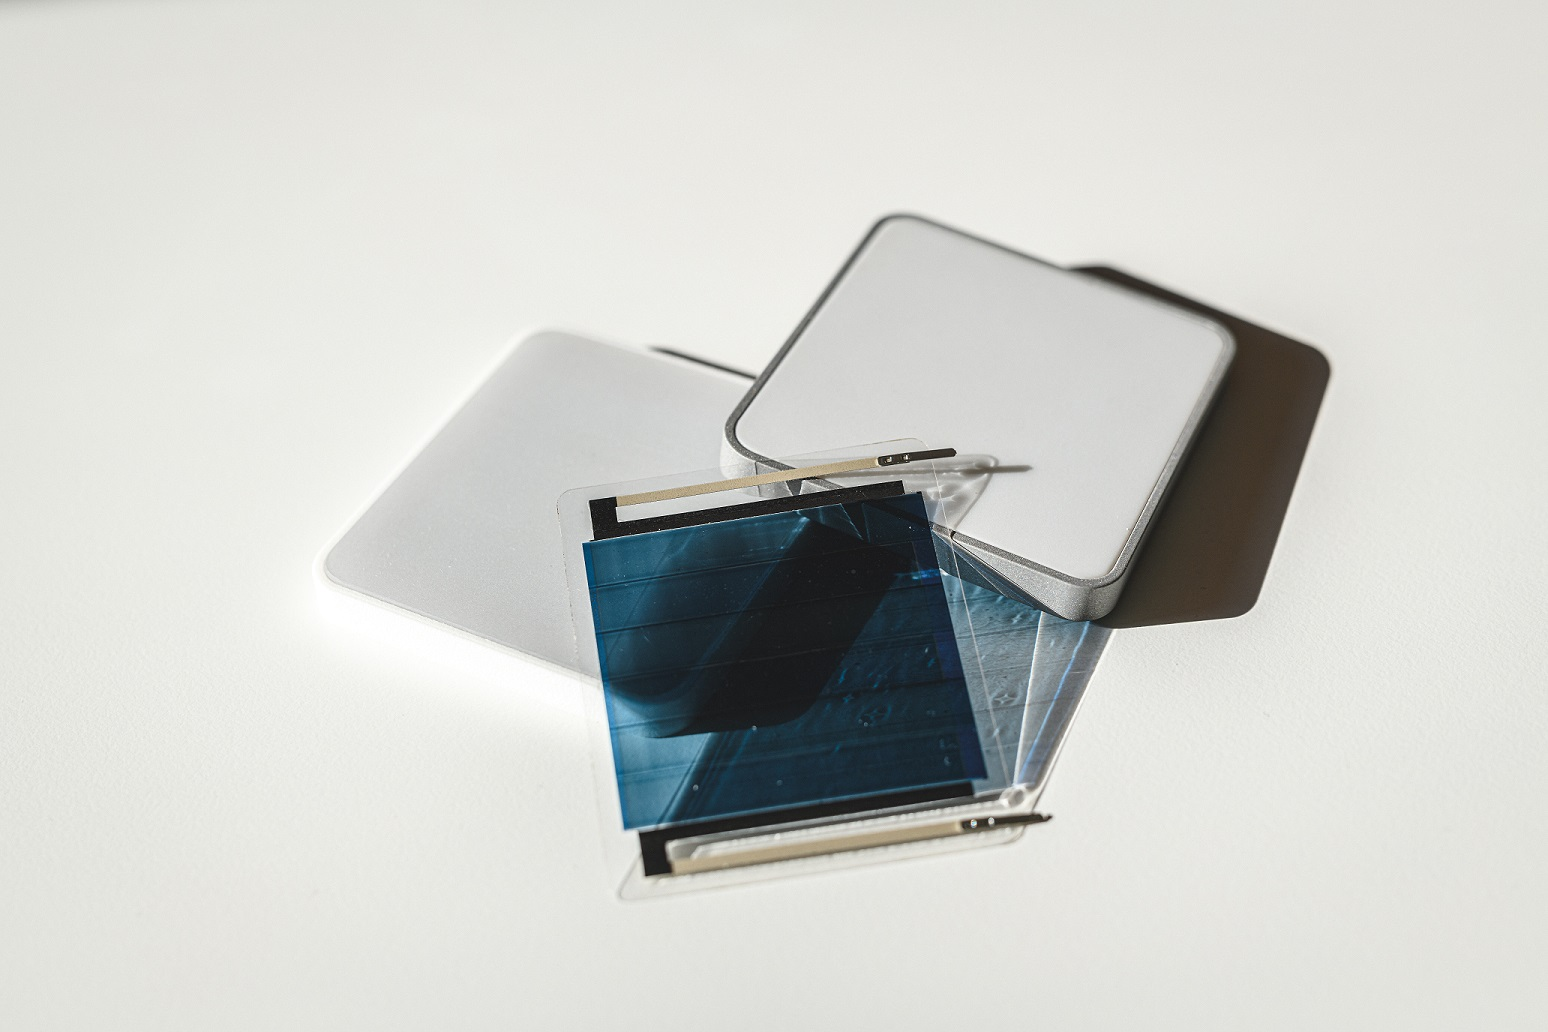 Epishine light cell and light cell with diffusor.